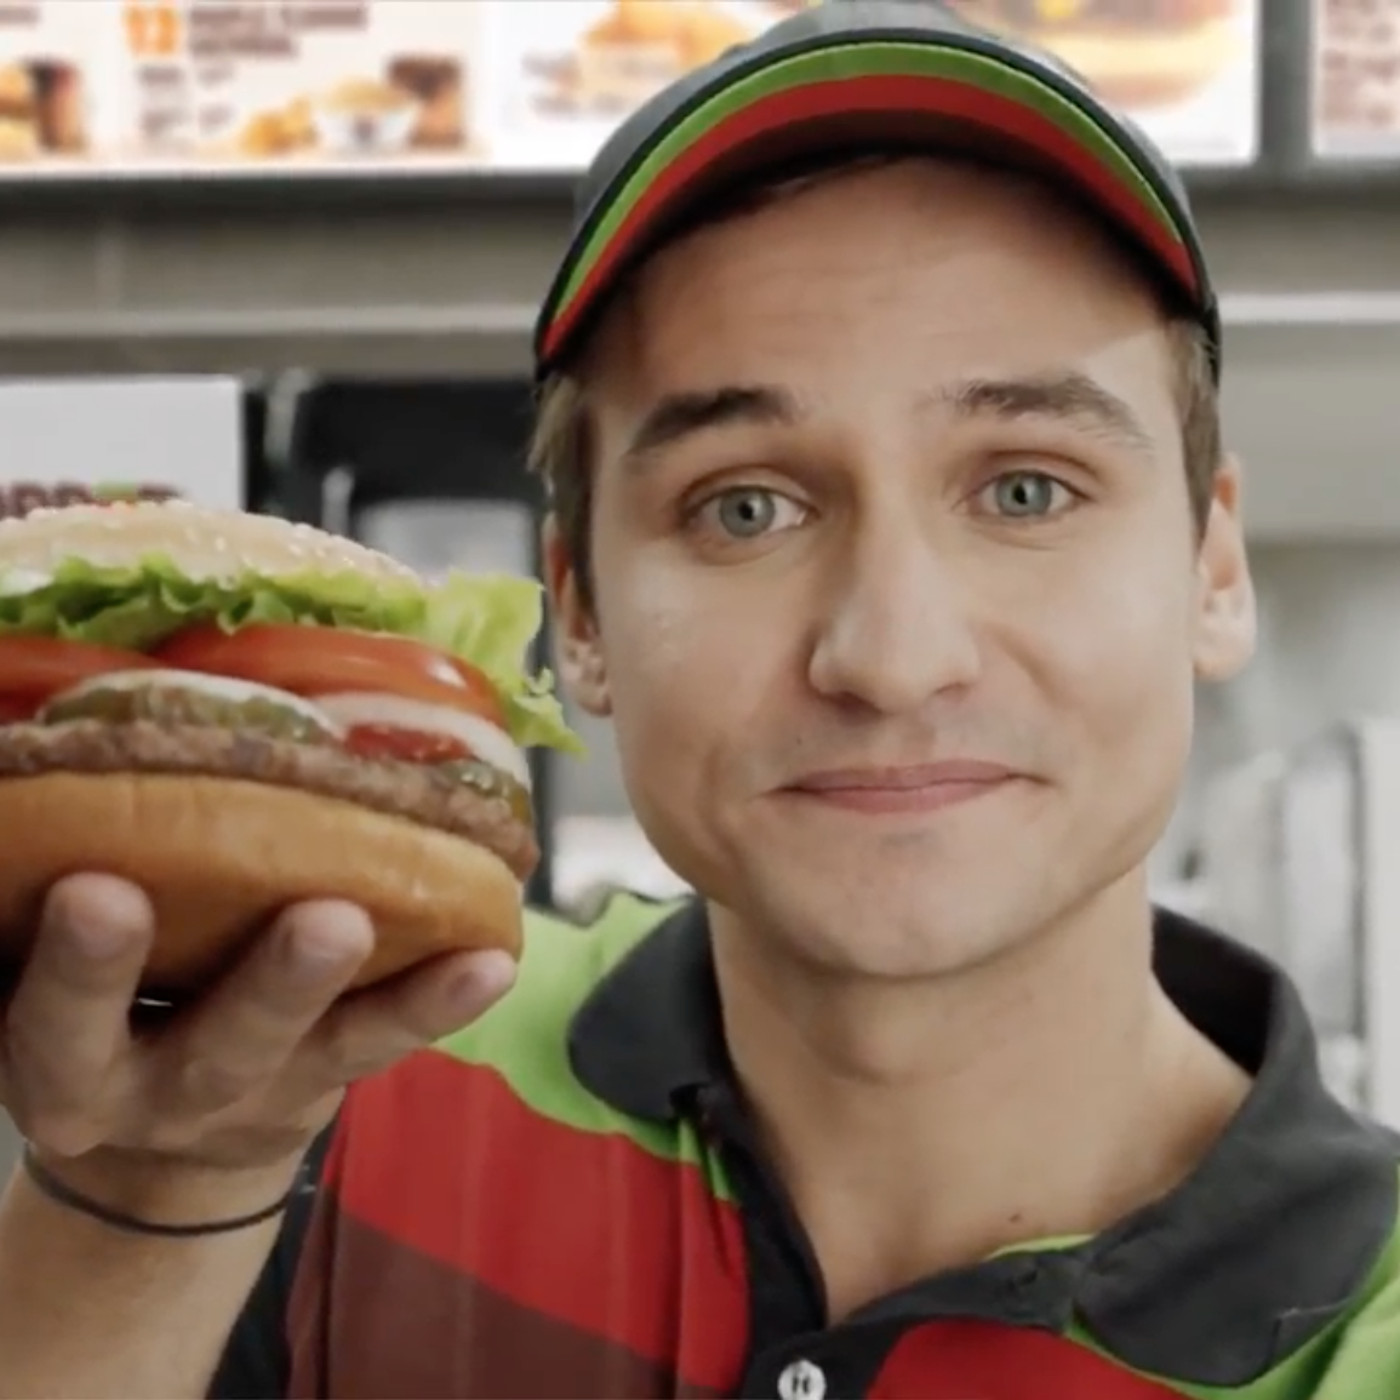 Burger King's new ad forces Google Home to advertise the Whopper - The Verge